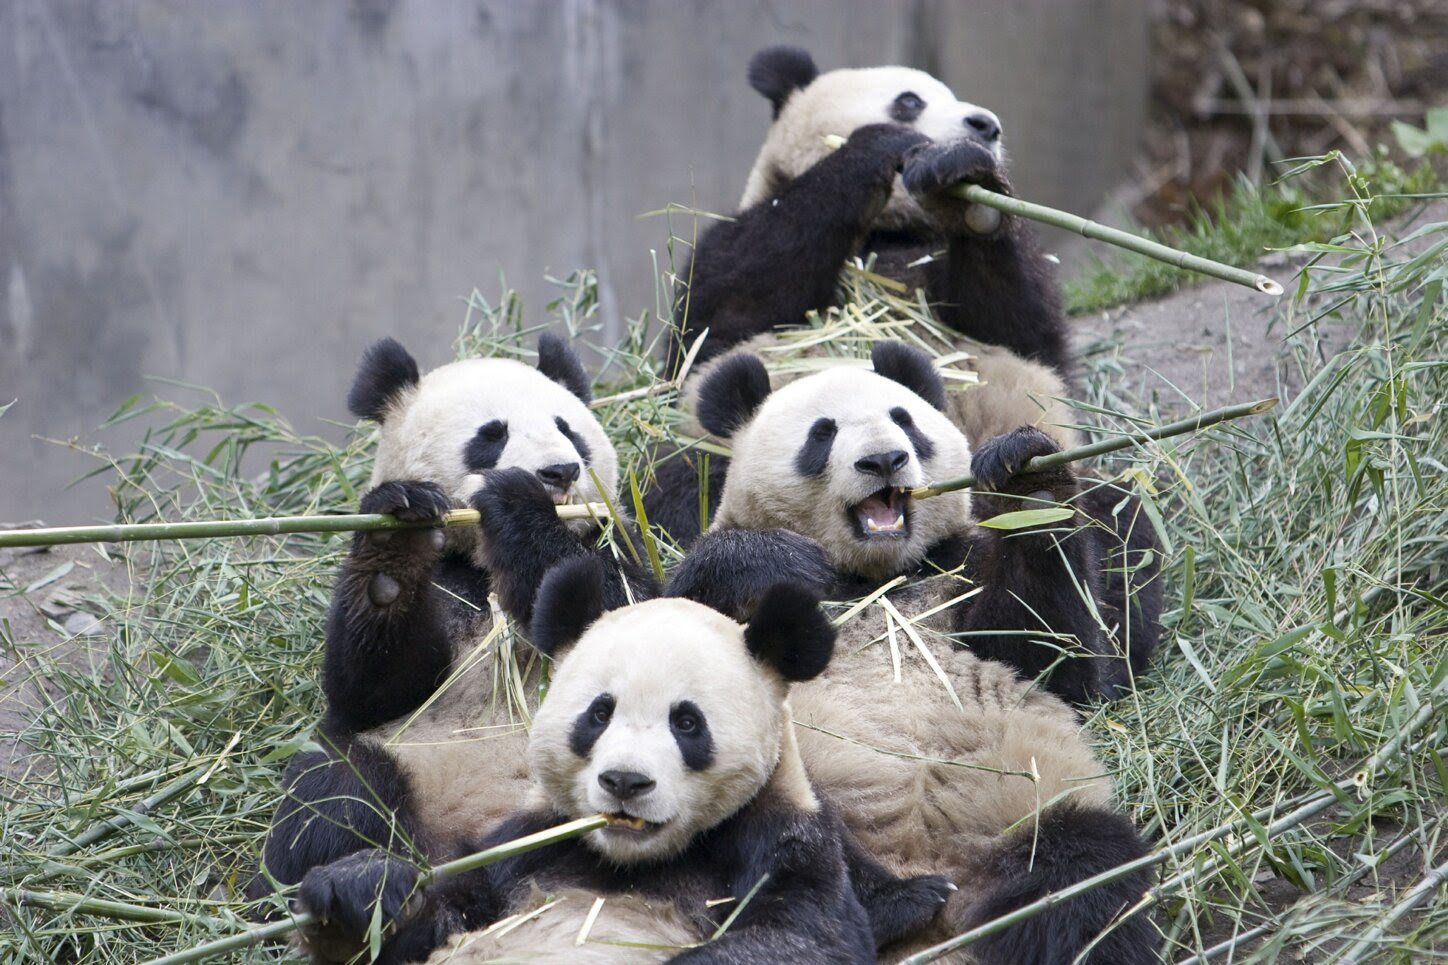 Giant Panda And Bamboo More Than A Meal To The Endangered Bear